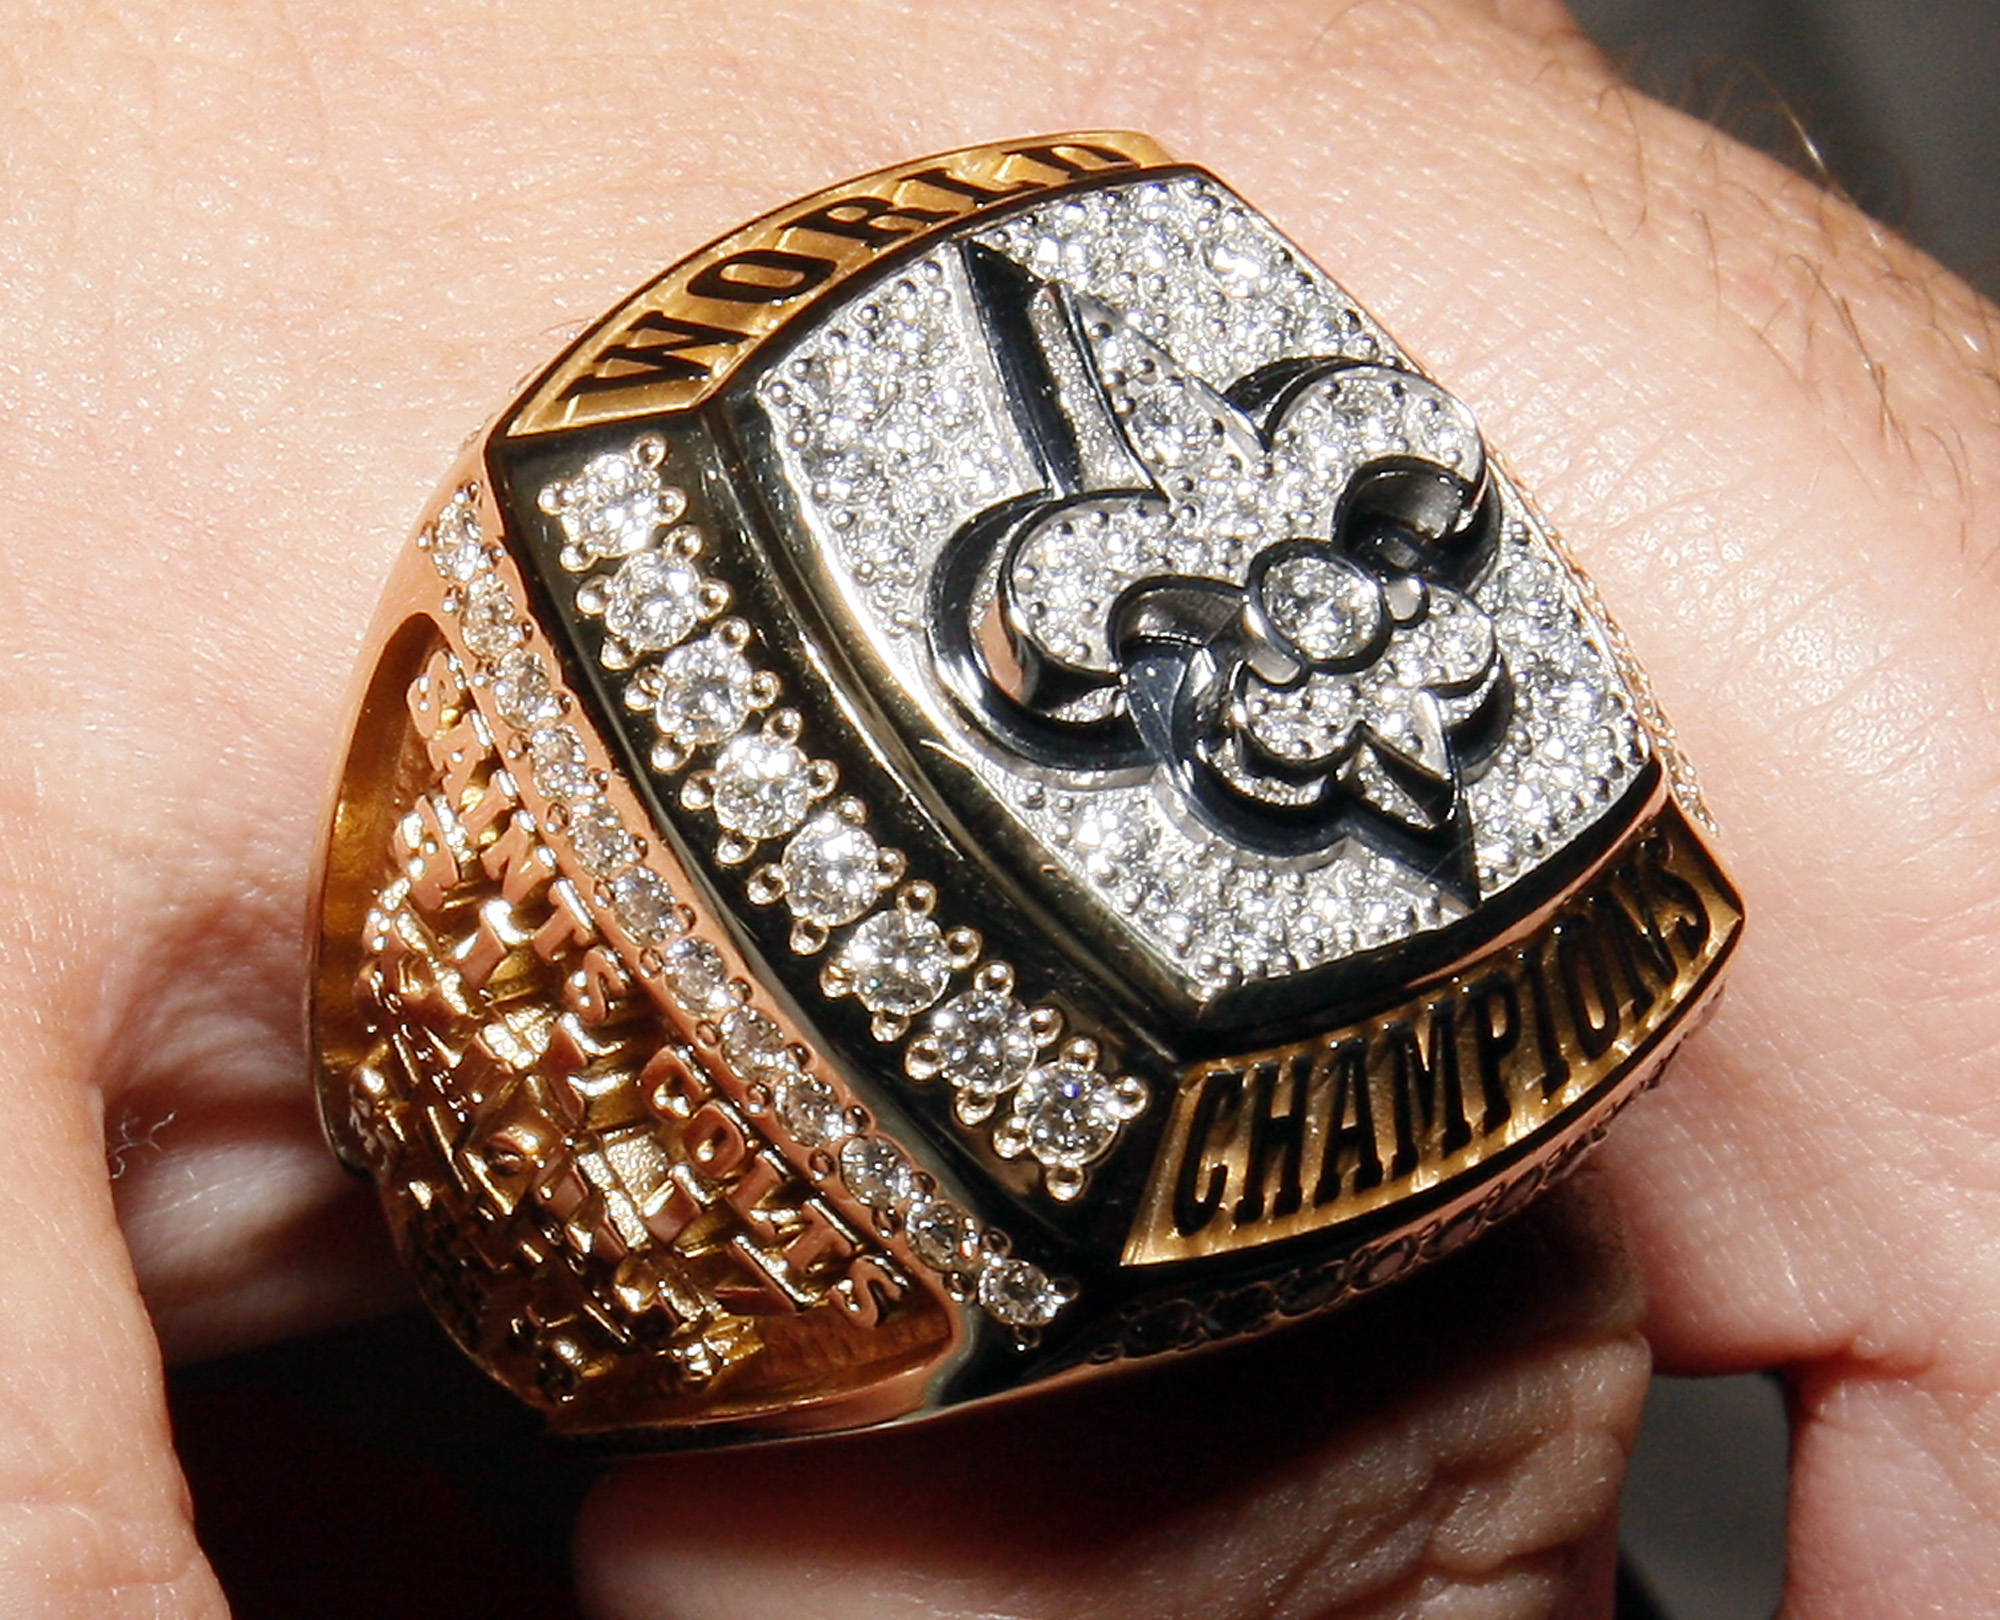 saints store superbowl ring com orleans rings new replicatedrings